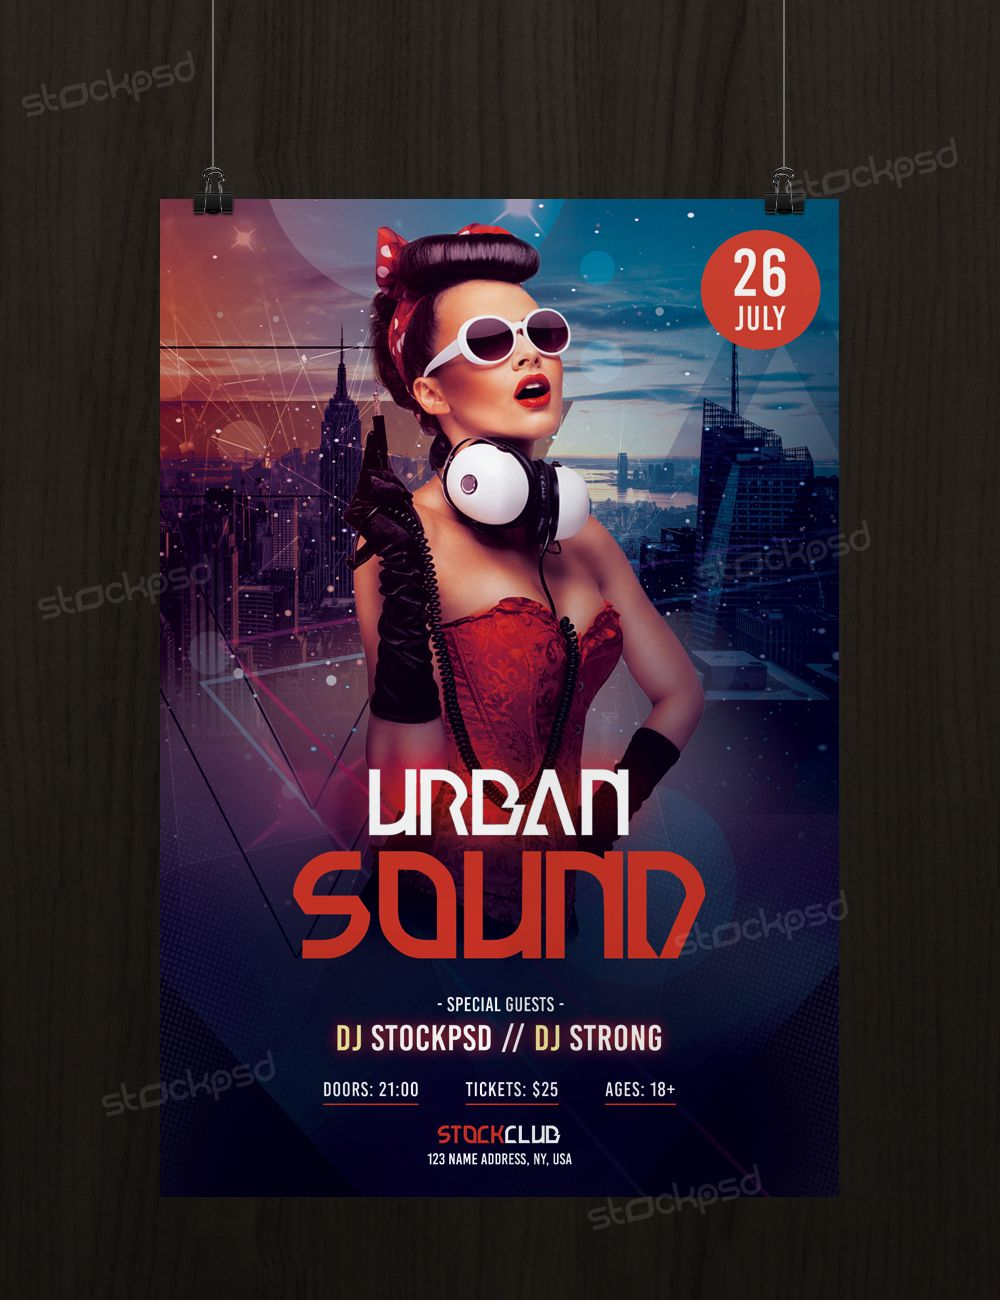 Urban Sound Download Free PSD Flyer Template Stockpsdnet - Free templates for flyers and brochures